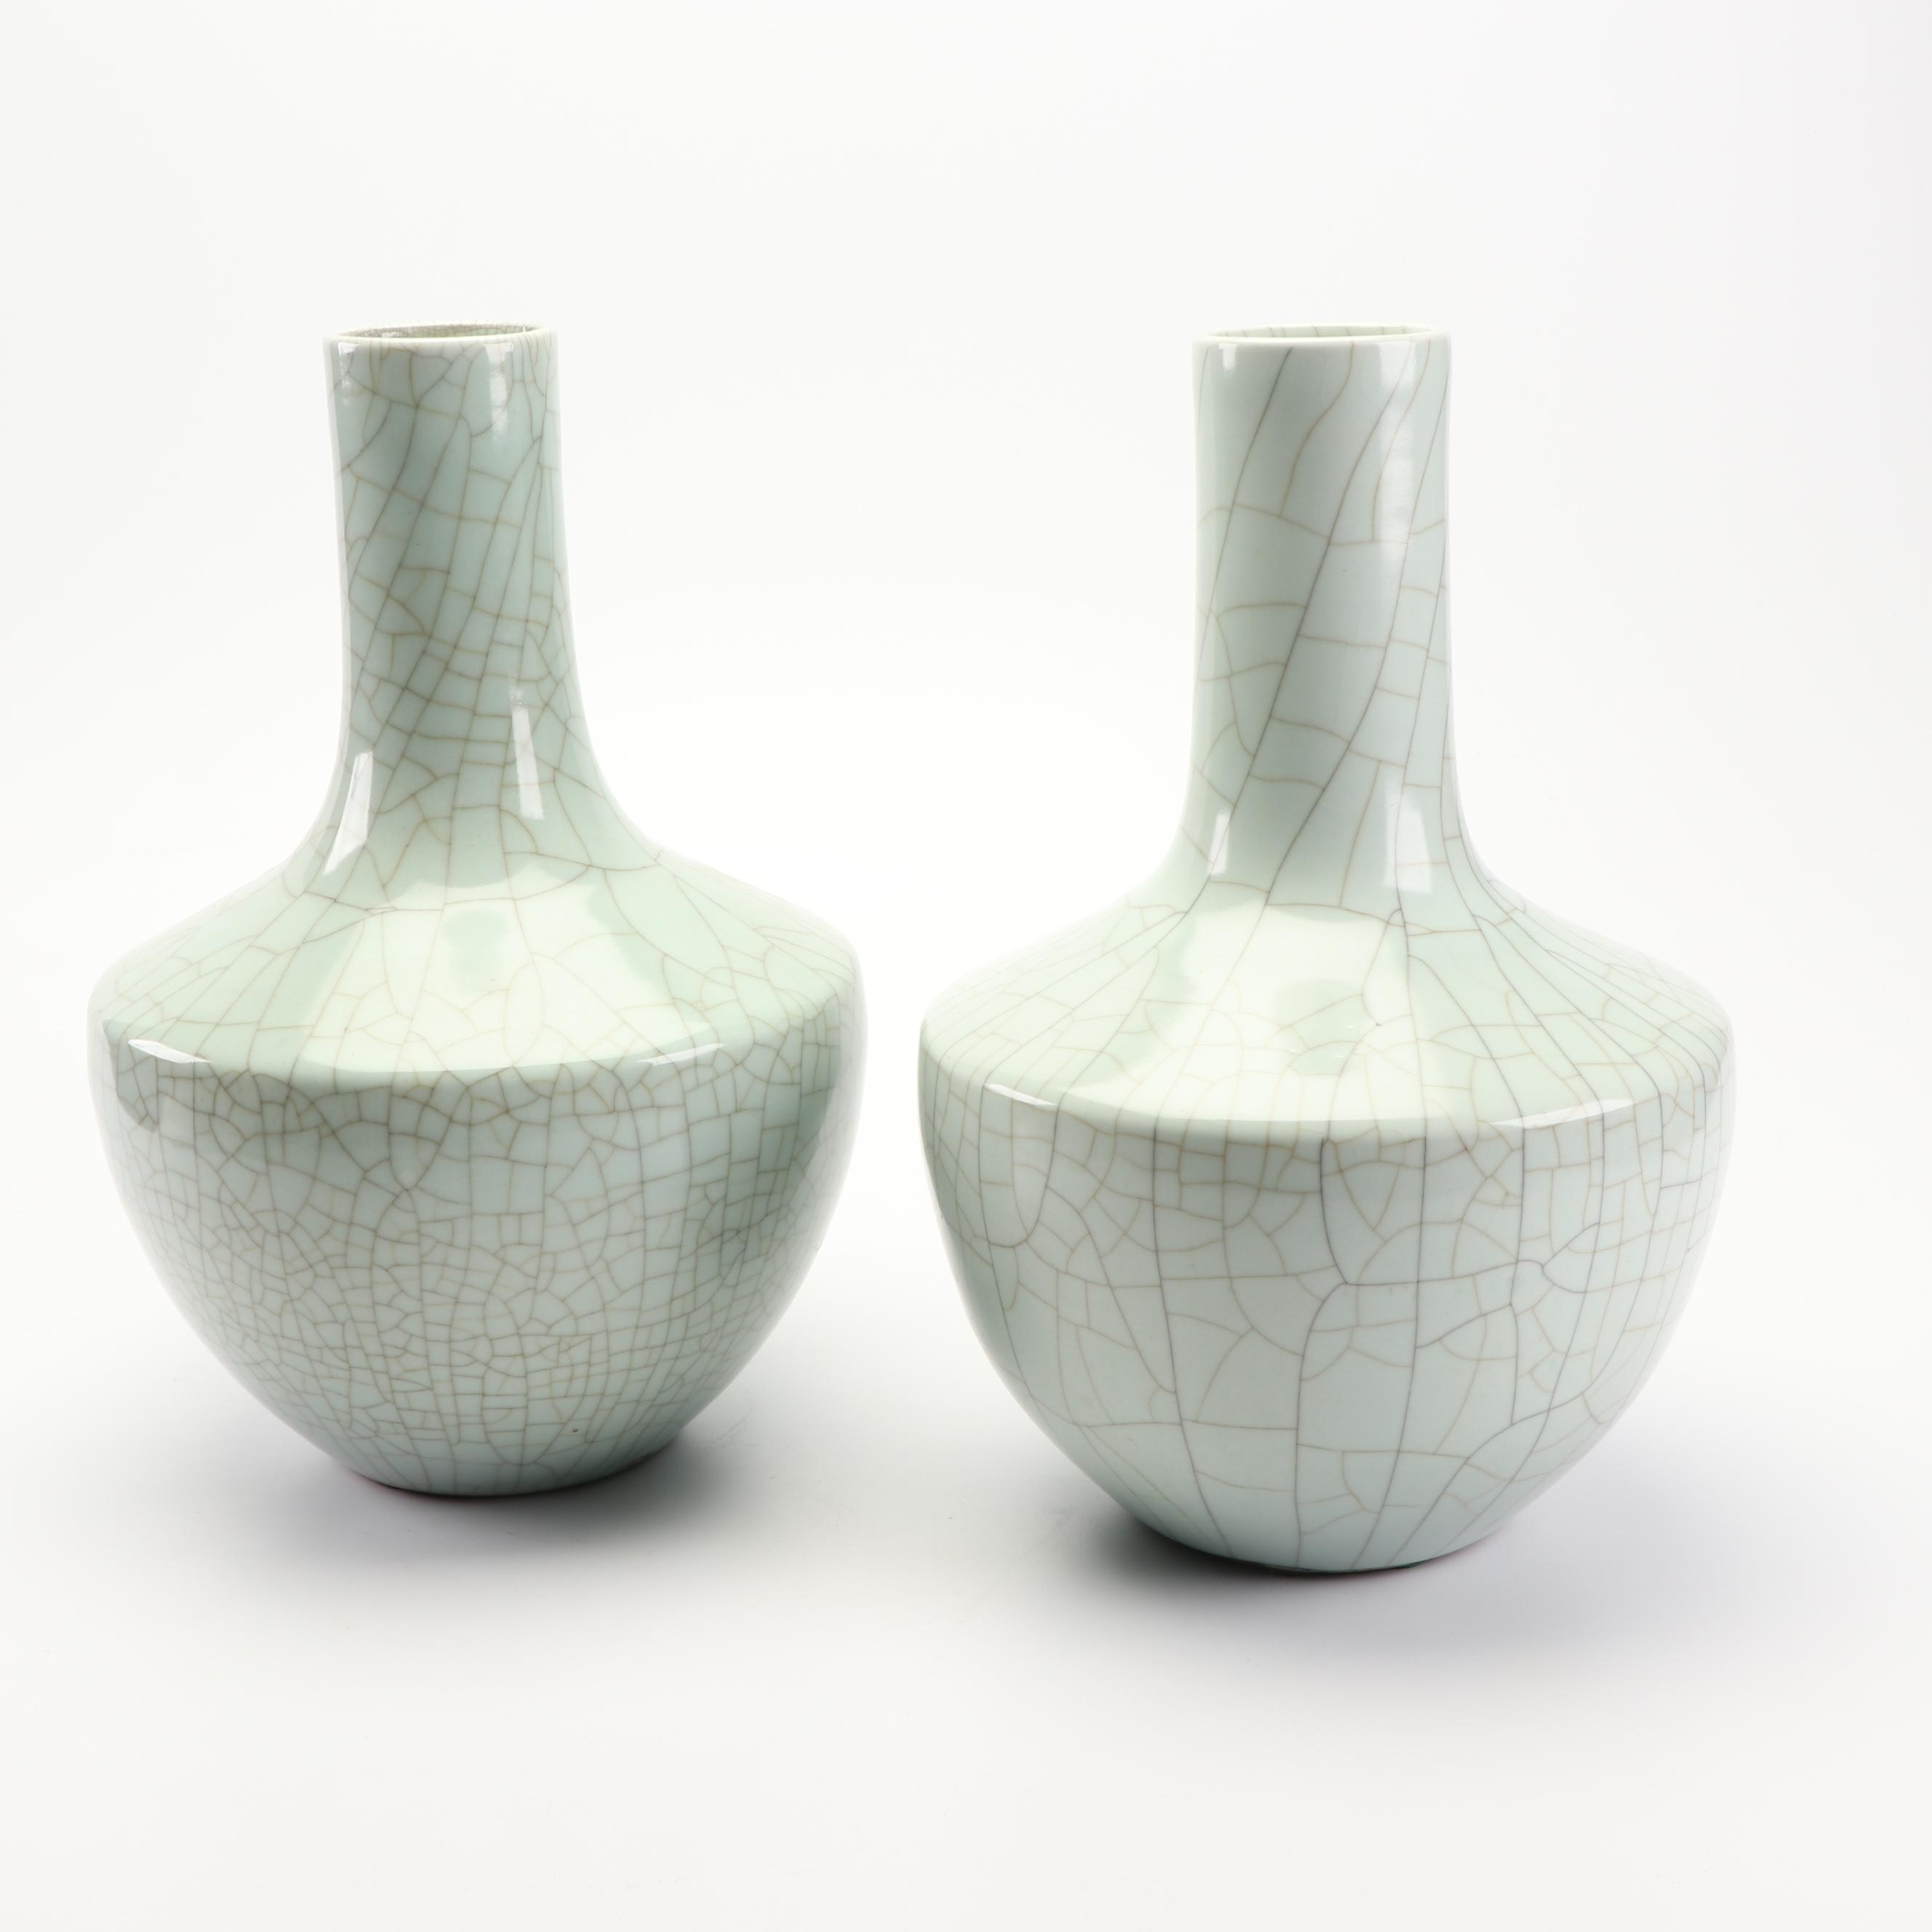 Chinese Celadon Ge Ware Style Ceramic Vases